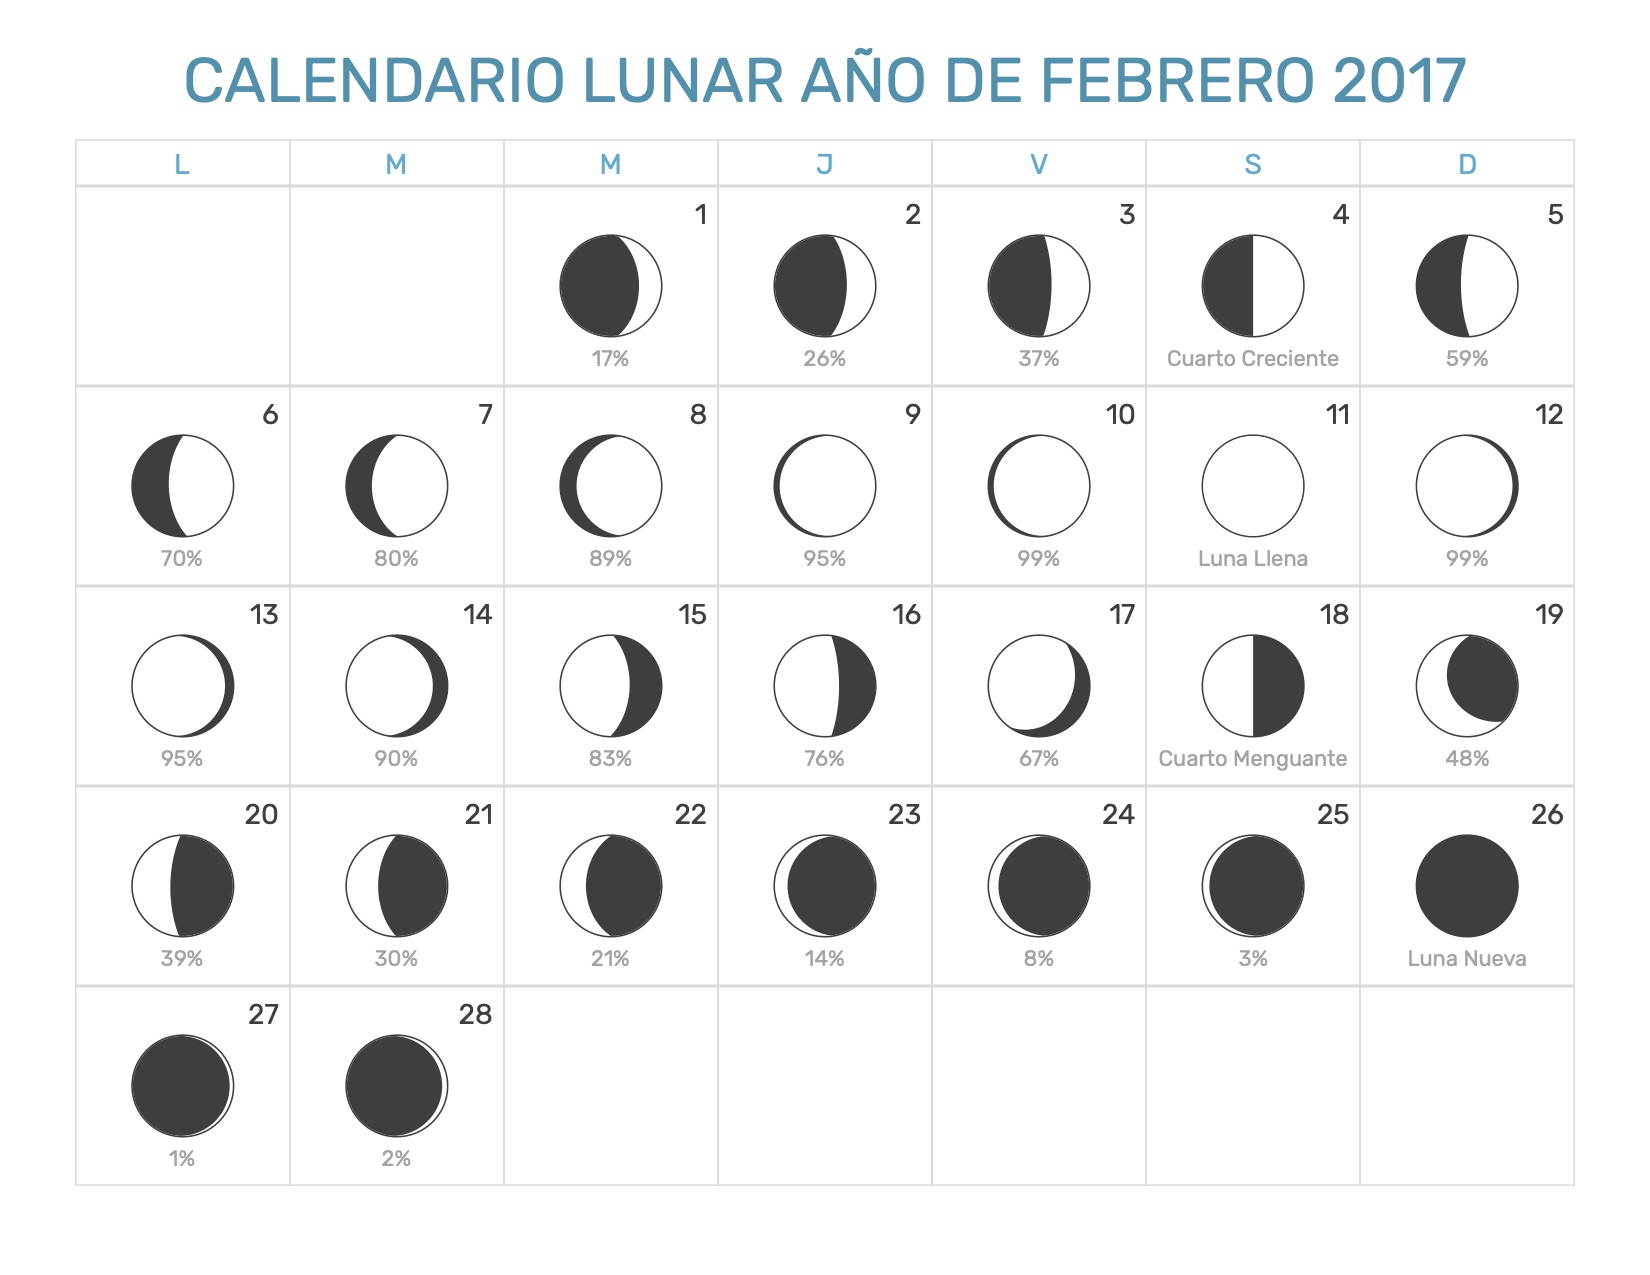 Calendario Lunar Febrero 2020.Calendario Lunar Febrero Ano 2017 Fases Lunares